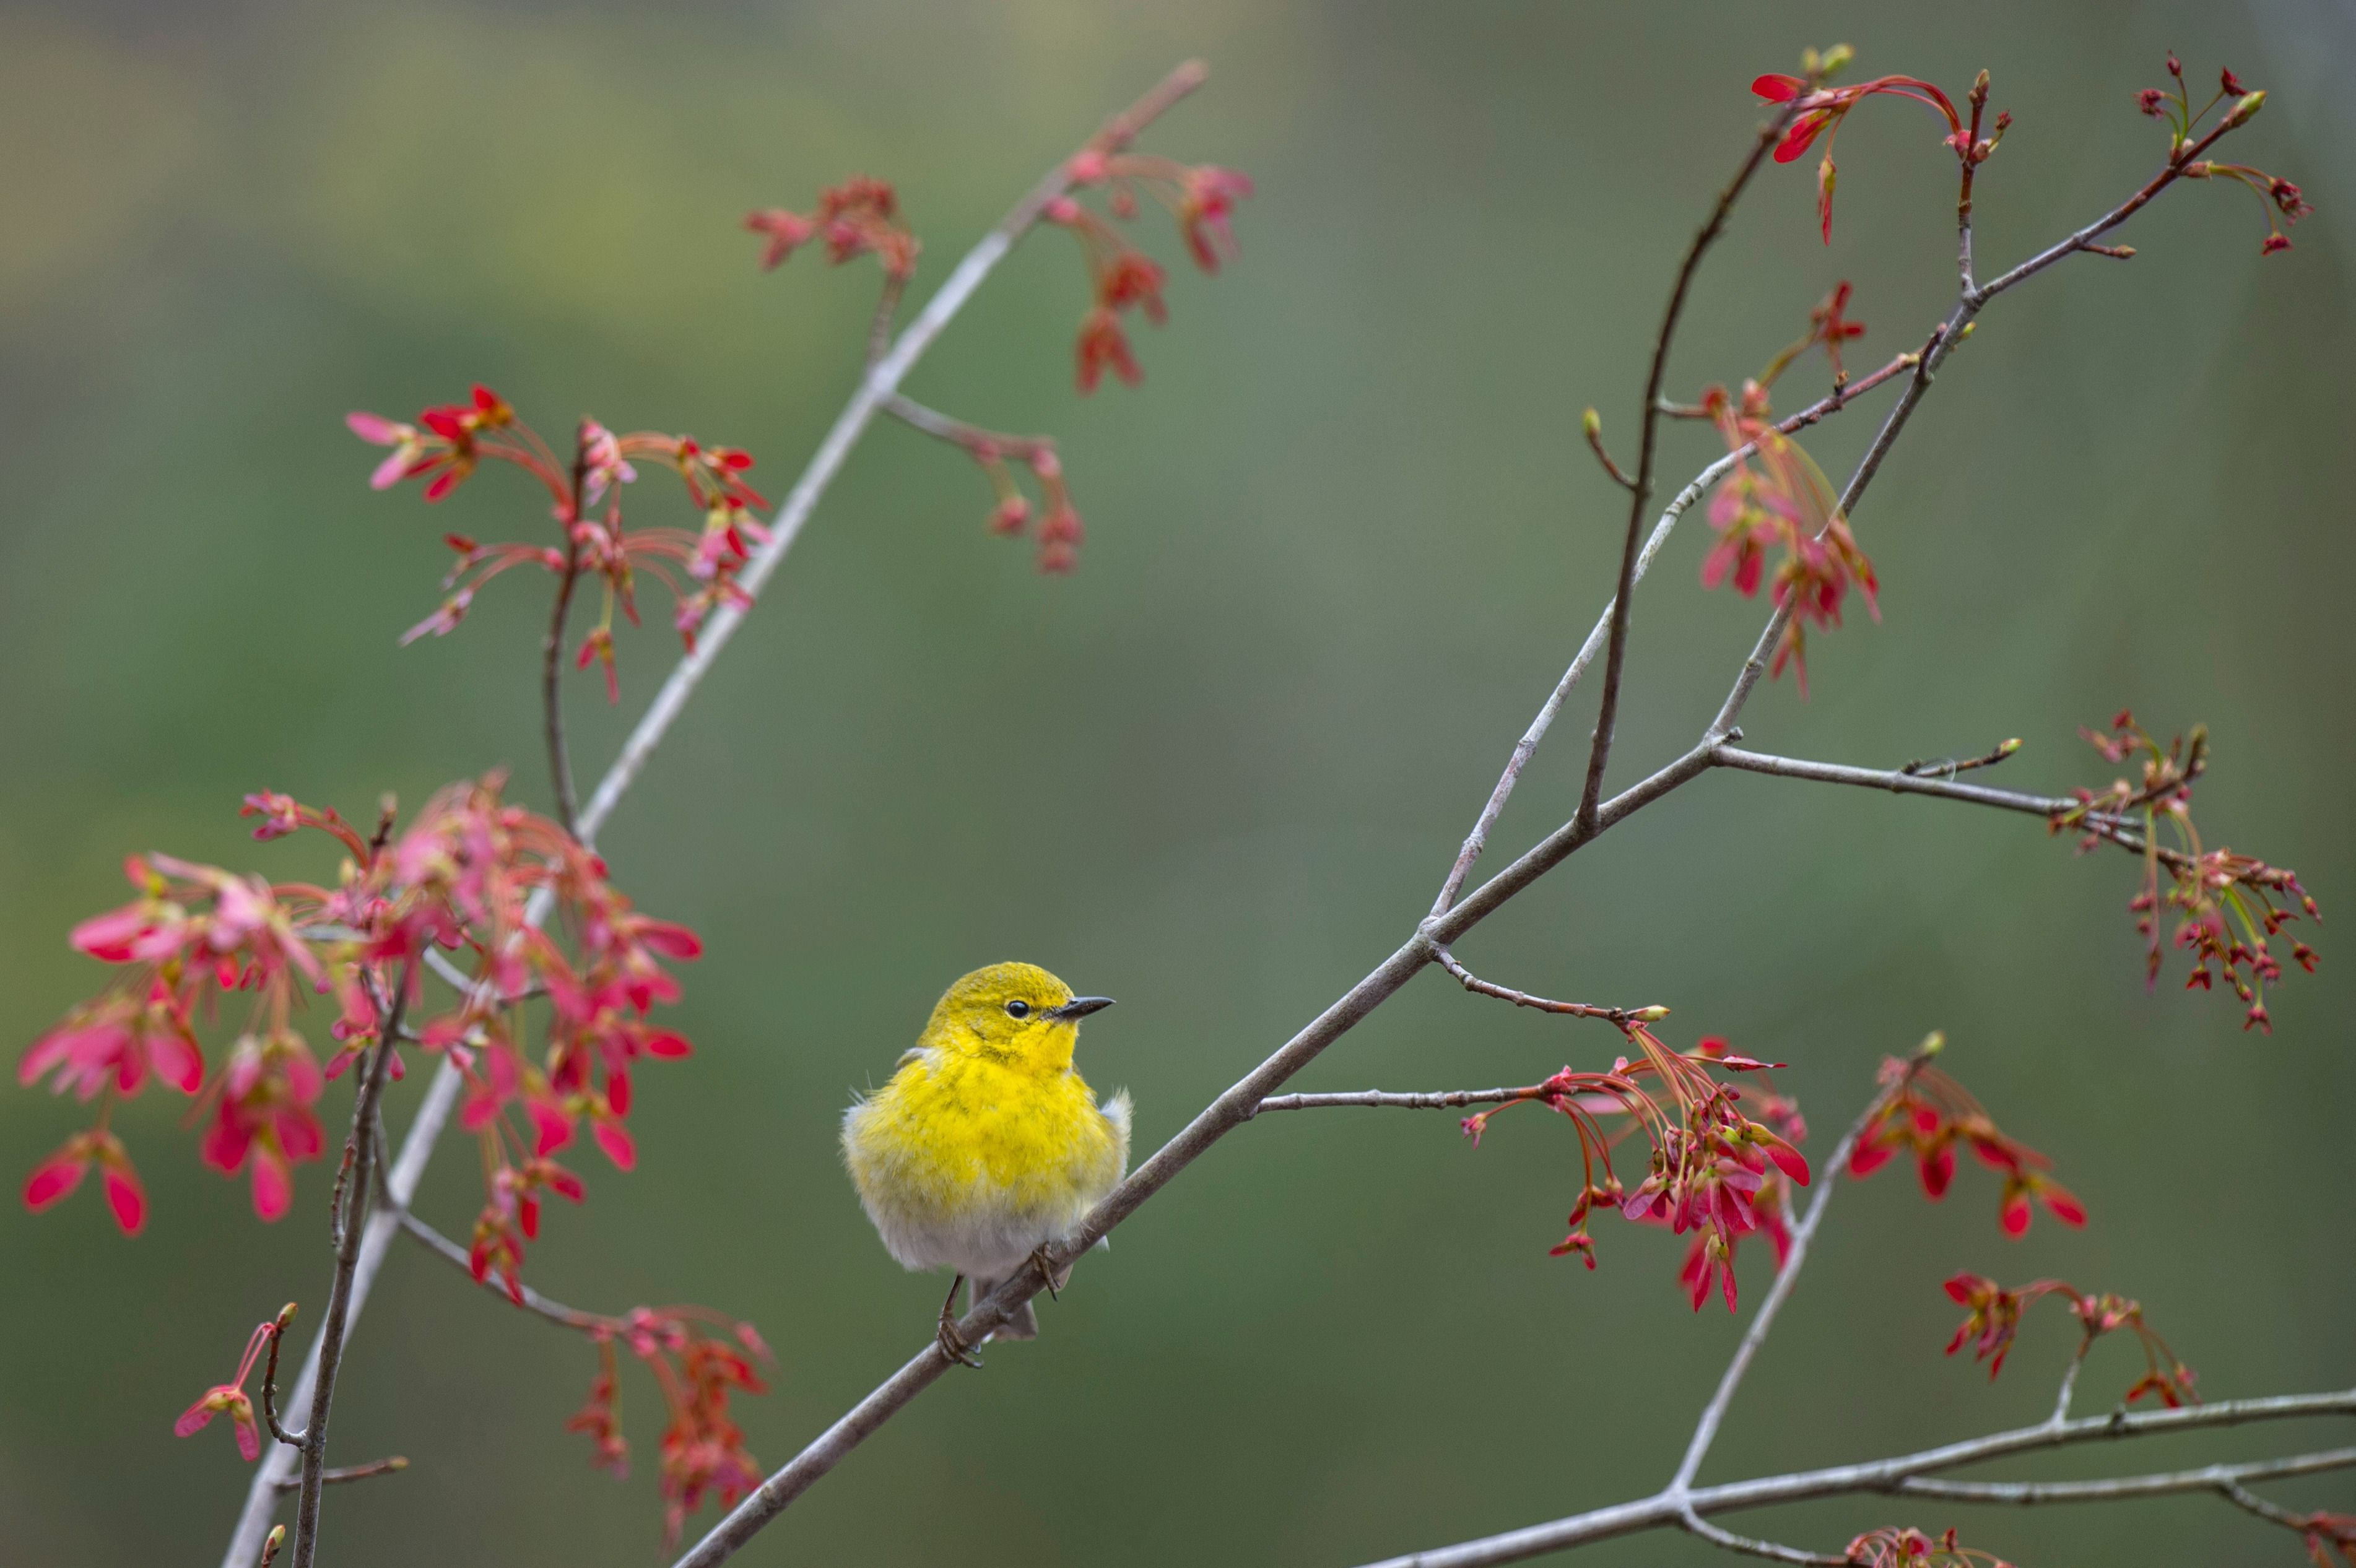 A pine warbler is perched in a maple tree.